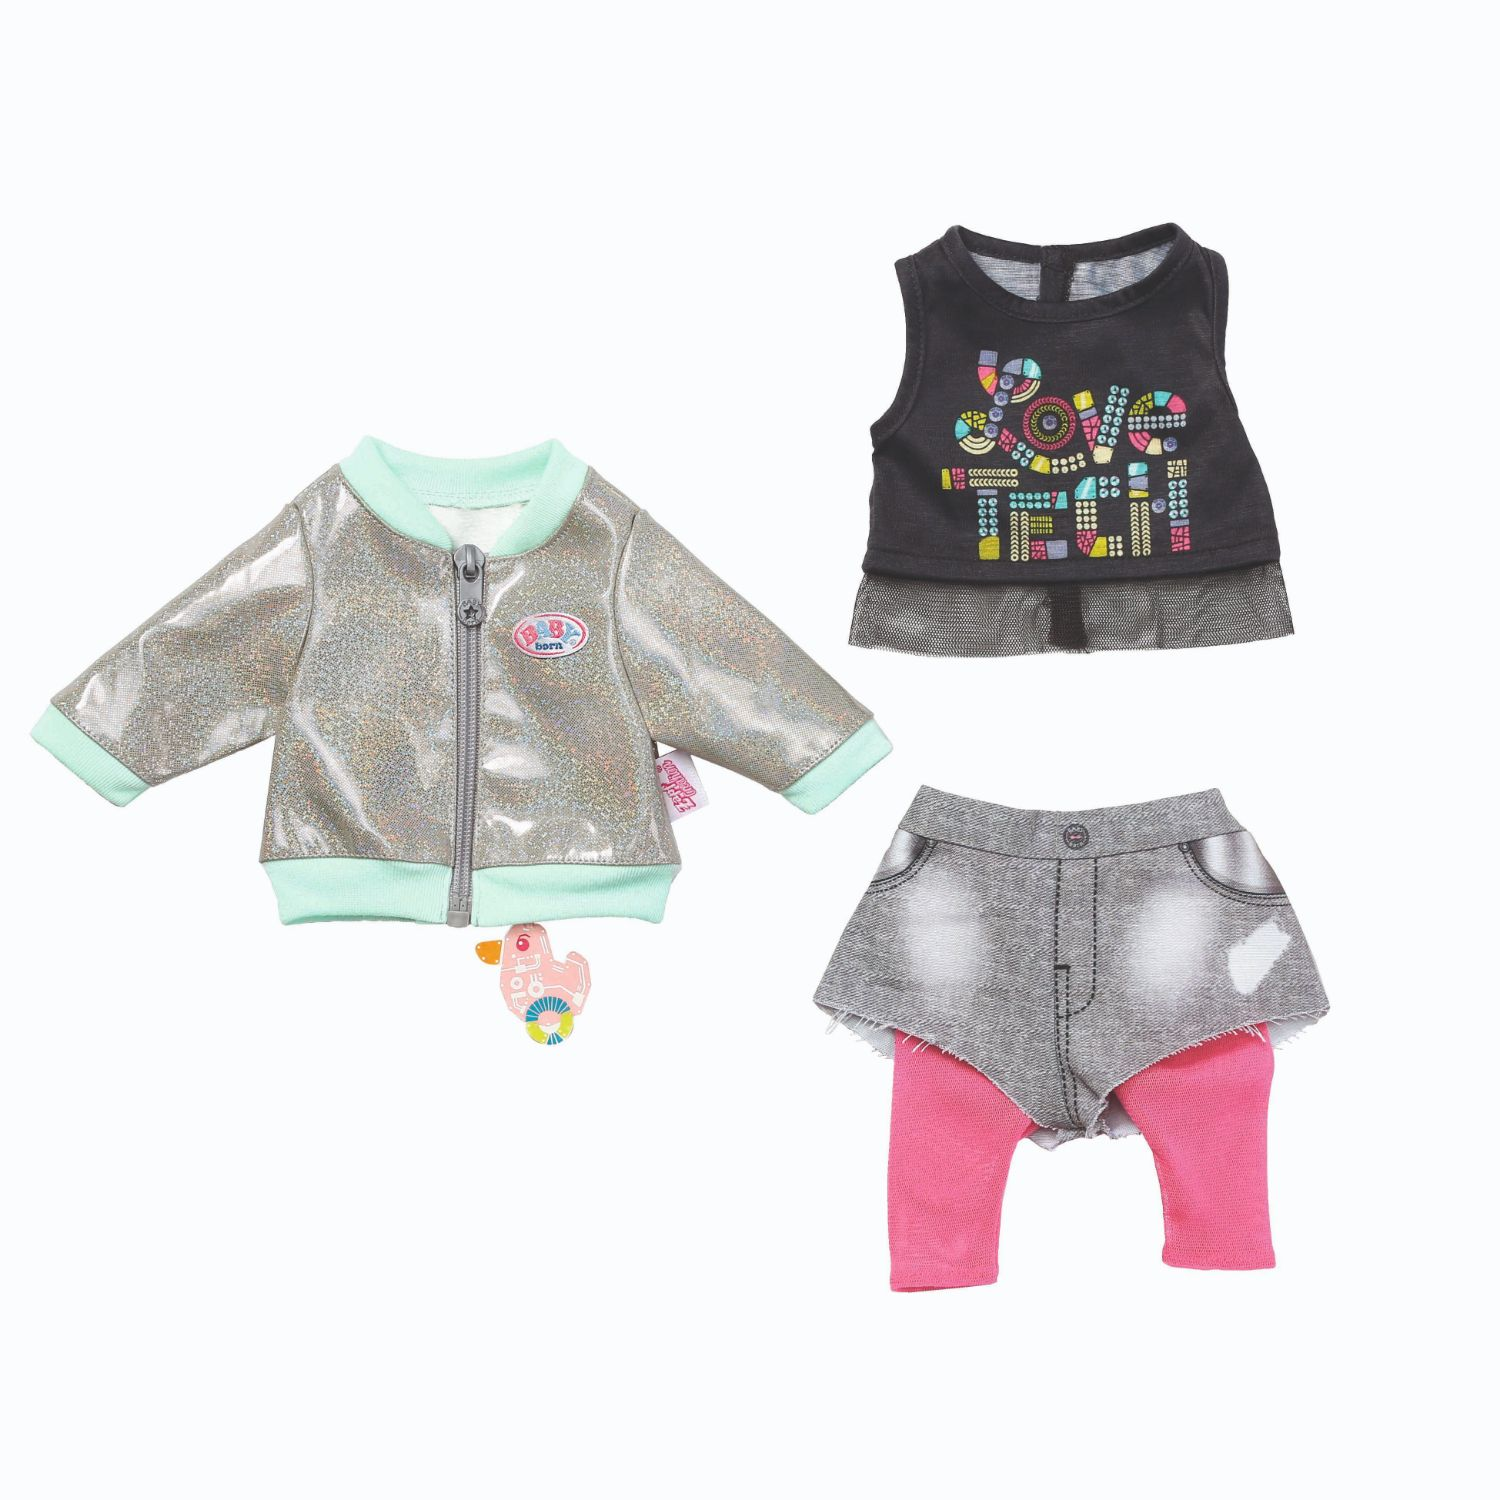 Afbeelding van Baby Born City Outfit